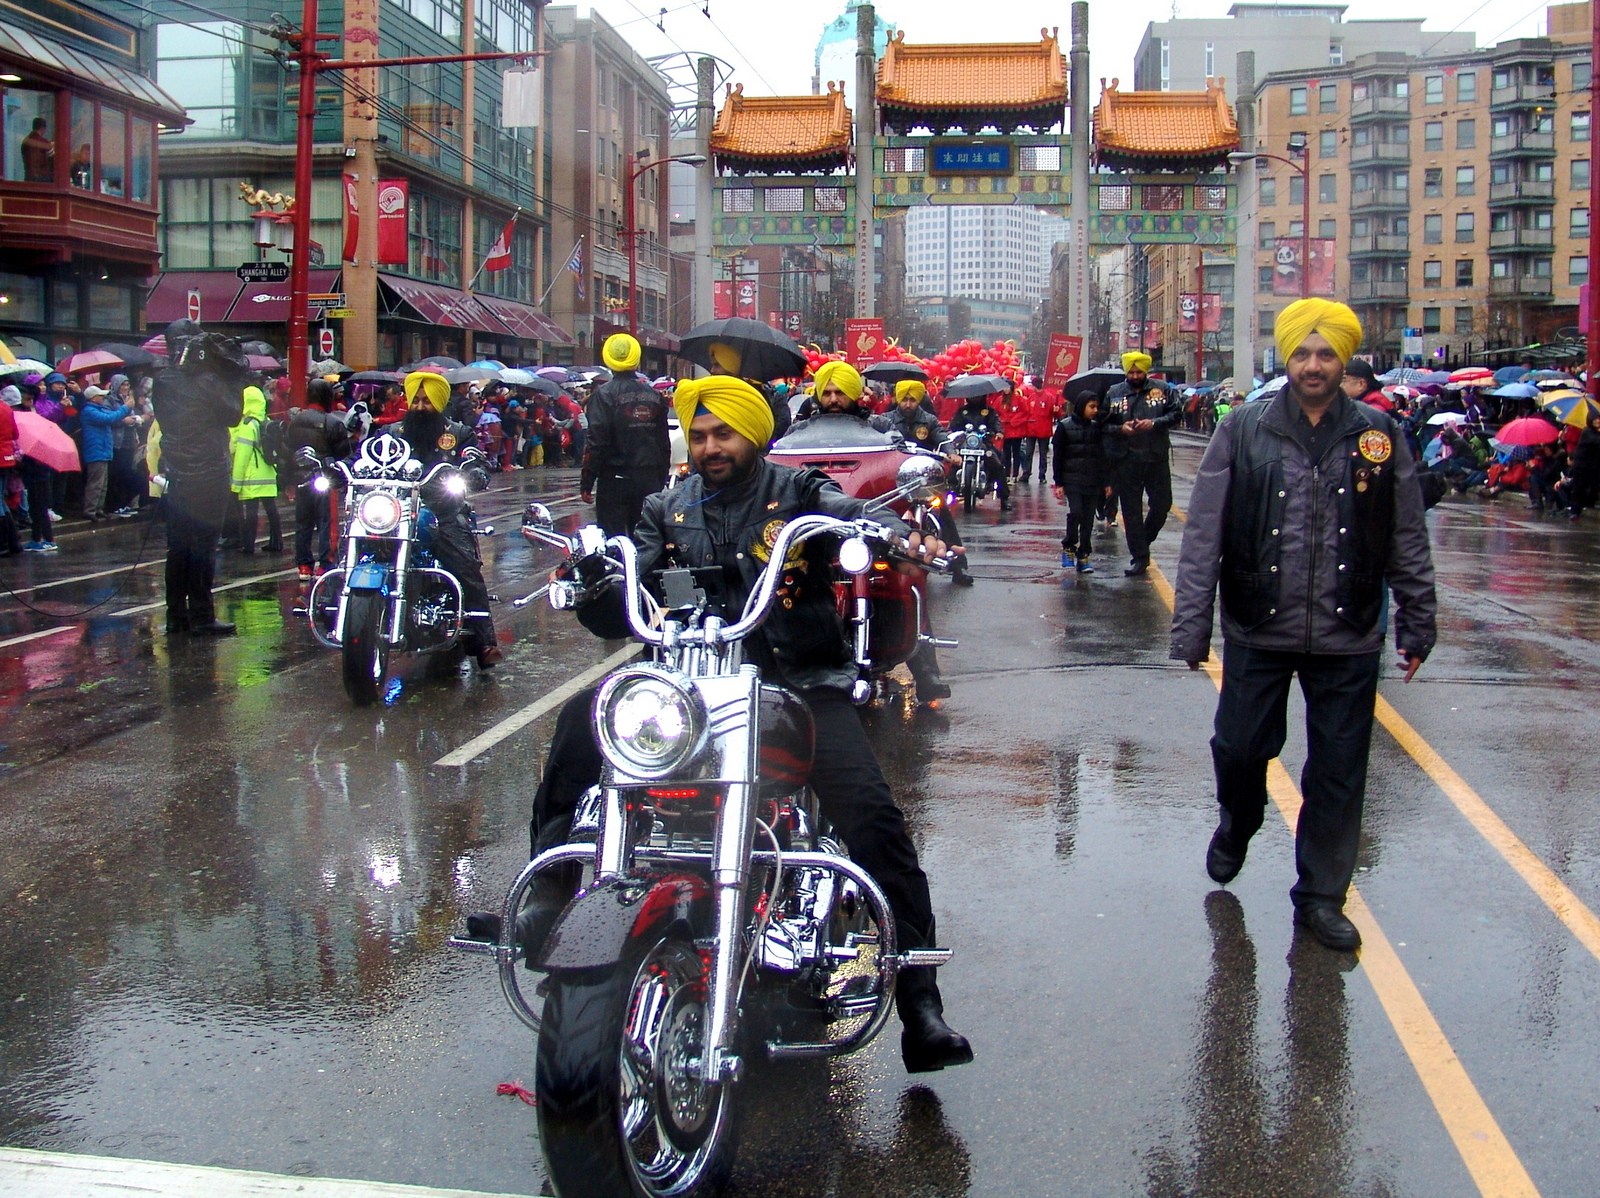 Indian Sikhs wearing yellow turbans on motocycles